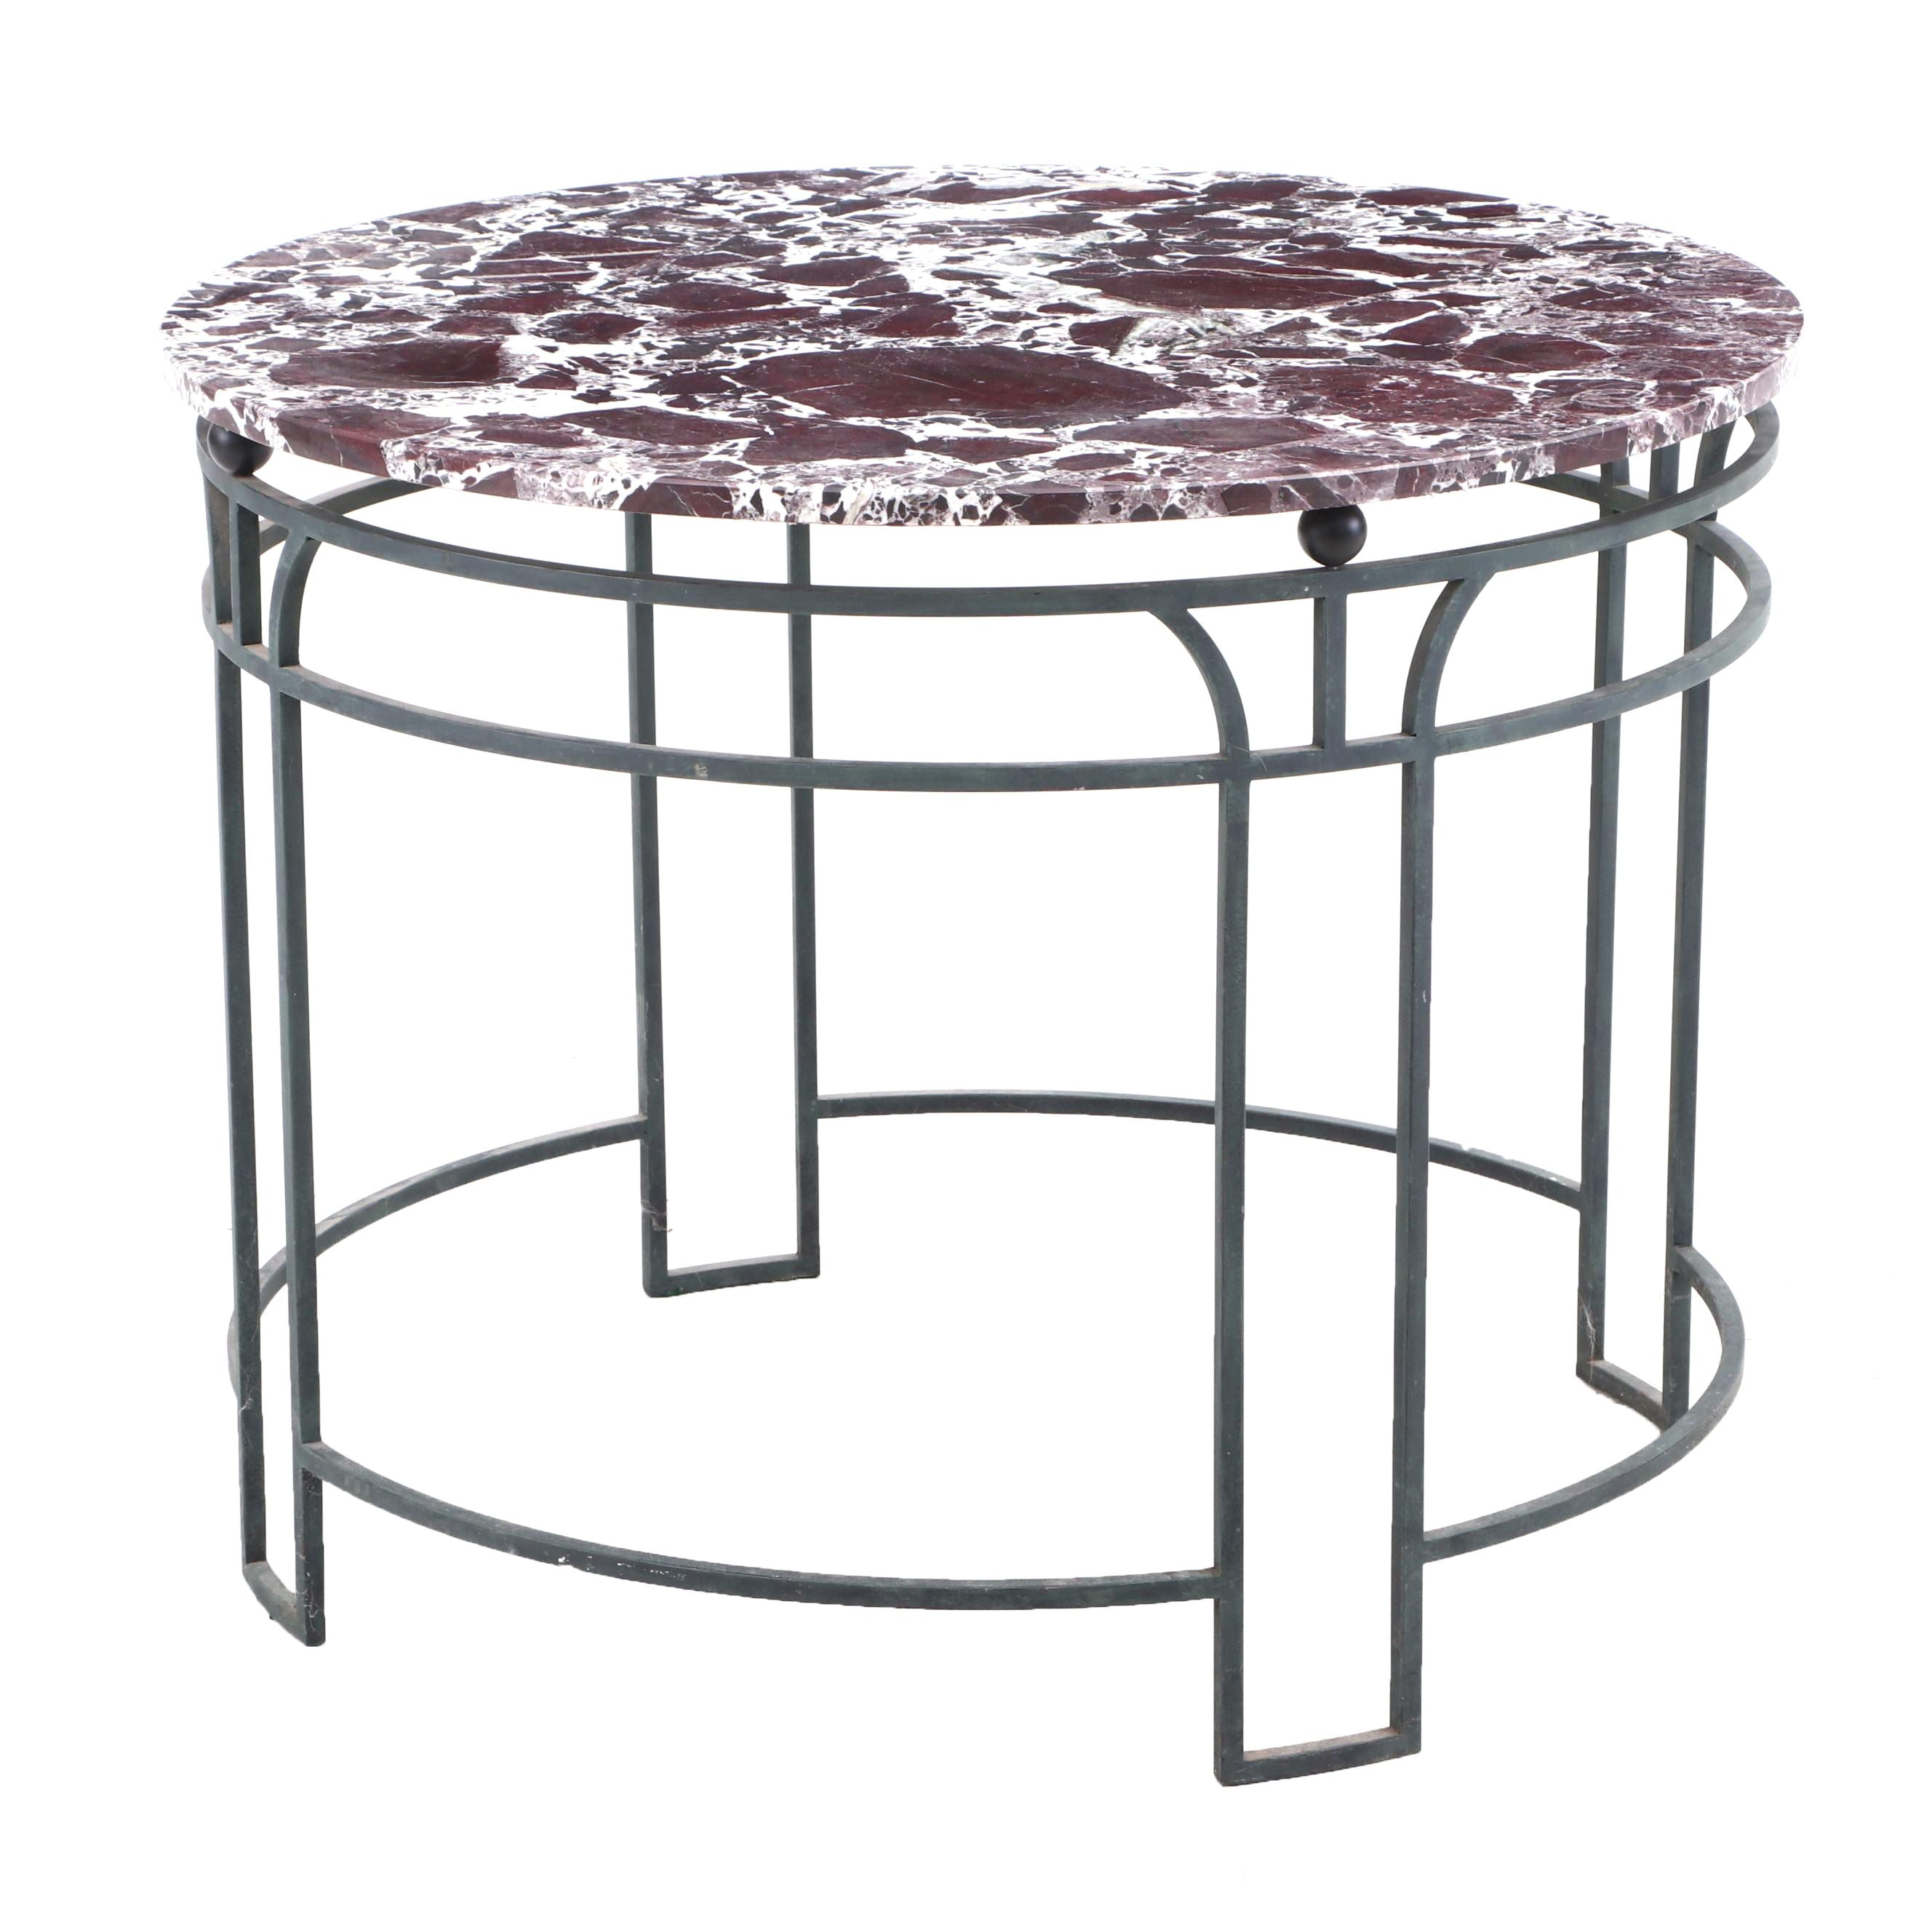 Marble Top Metal Frame Dinette Table